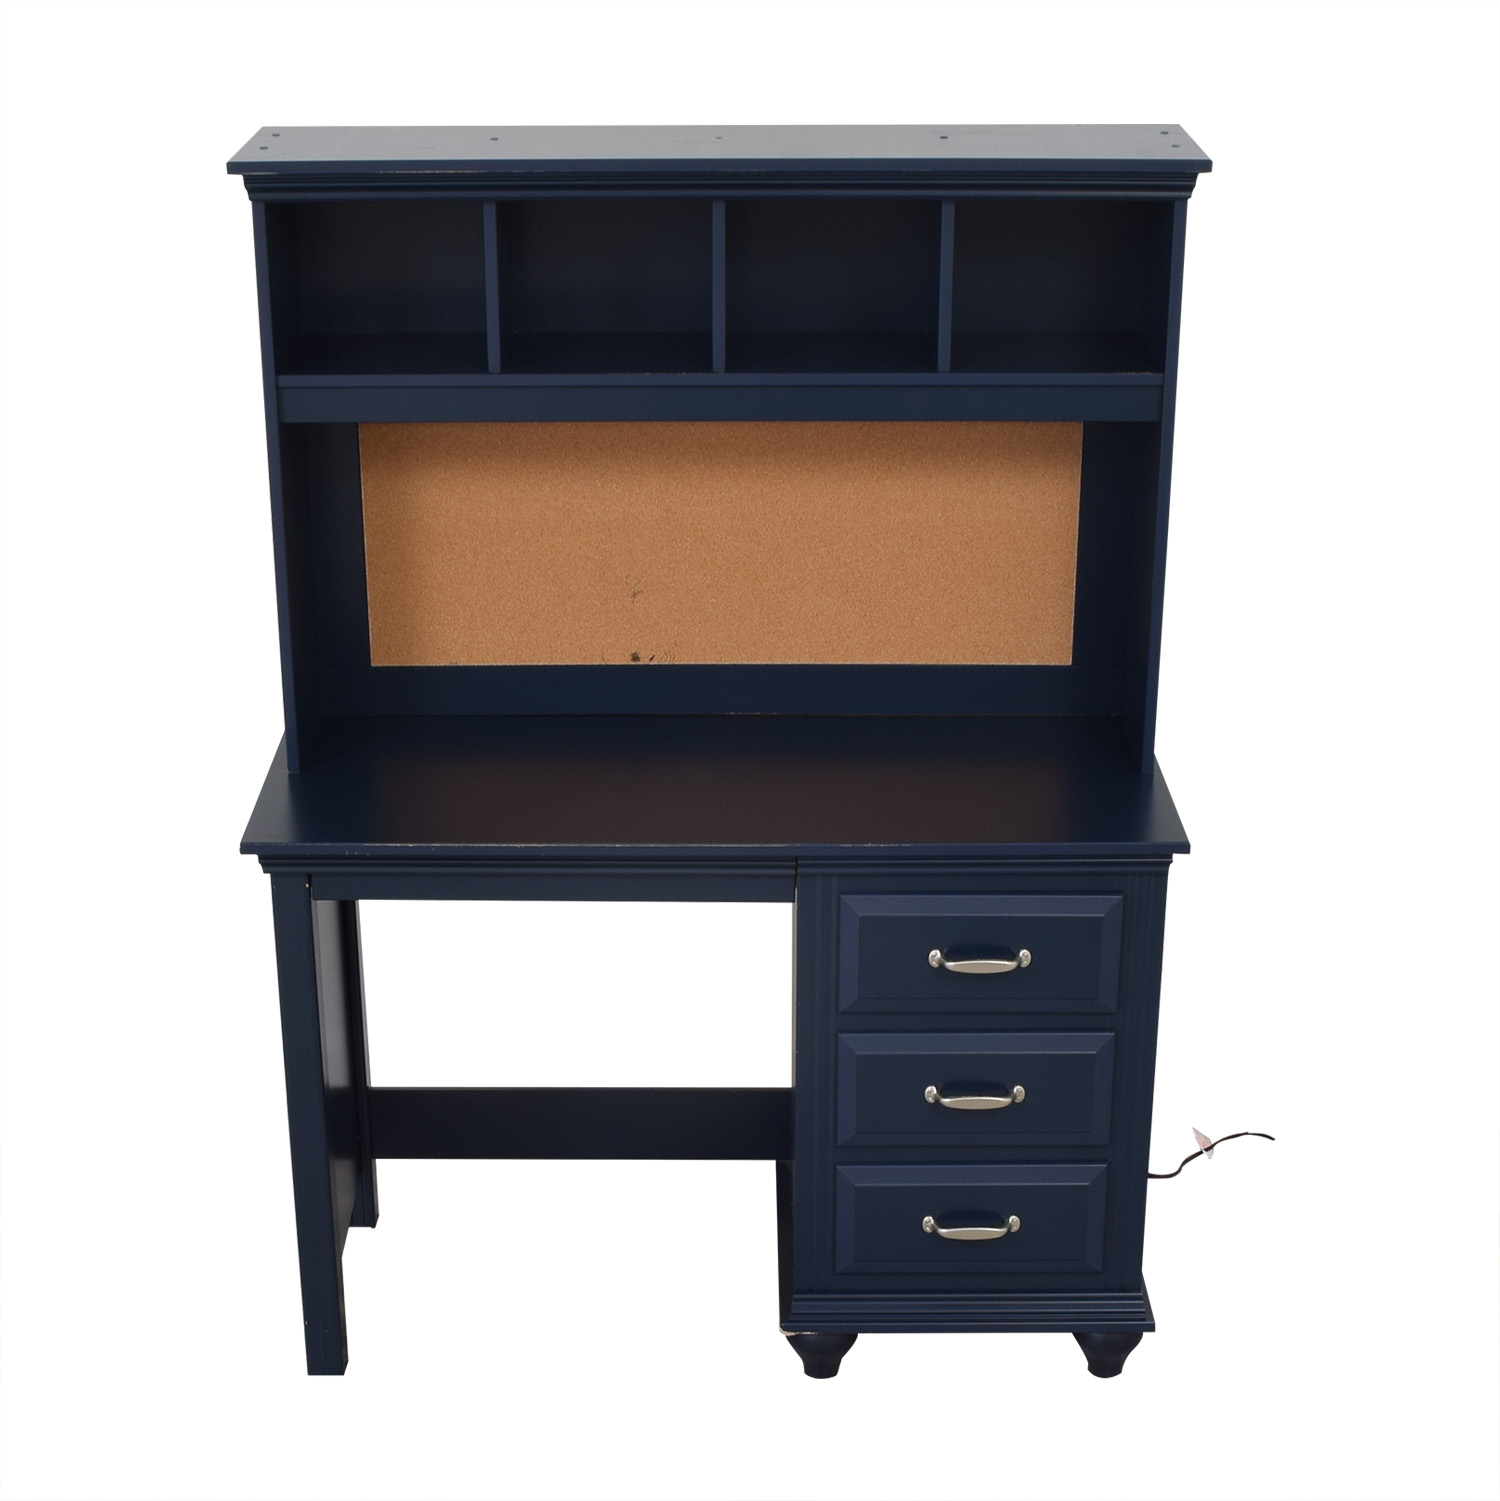 Wayfair Wayfair Desk with Hutch dimensions